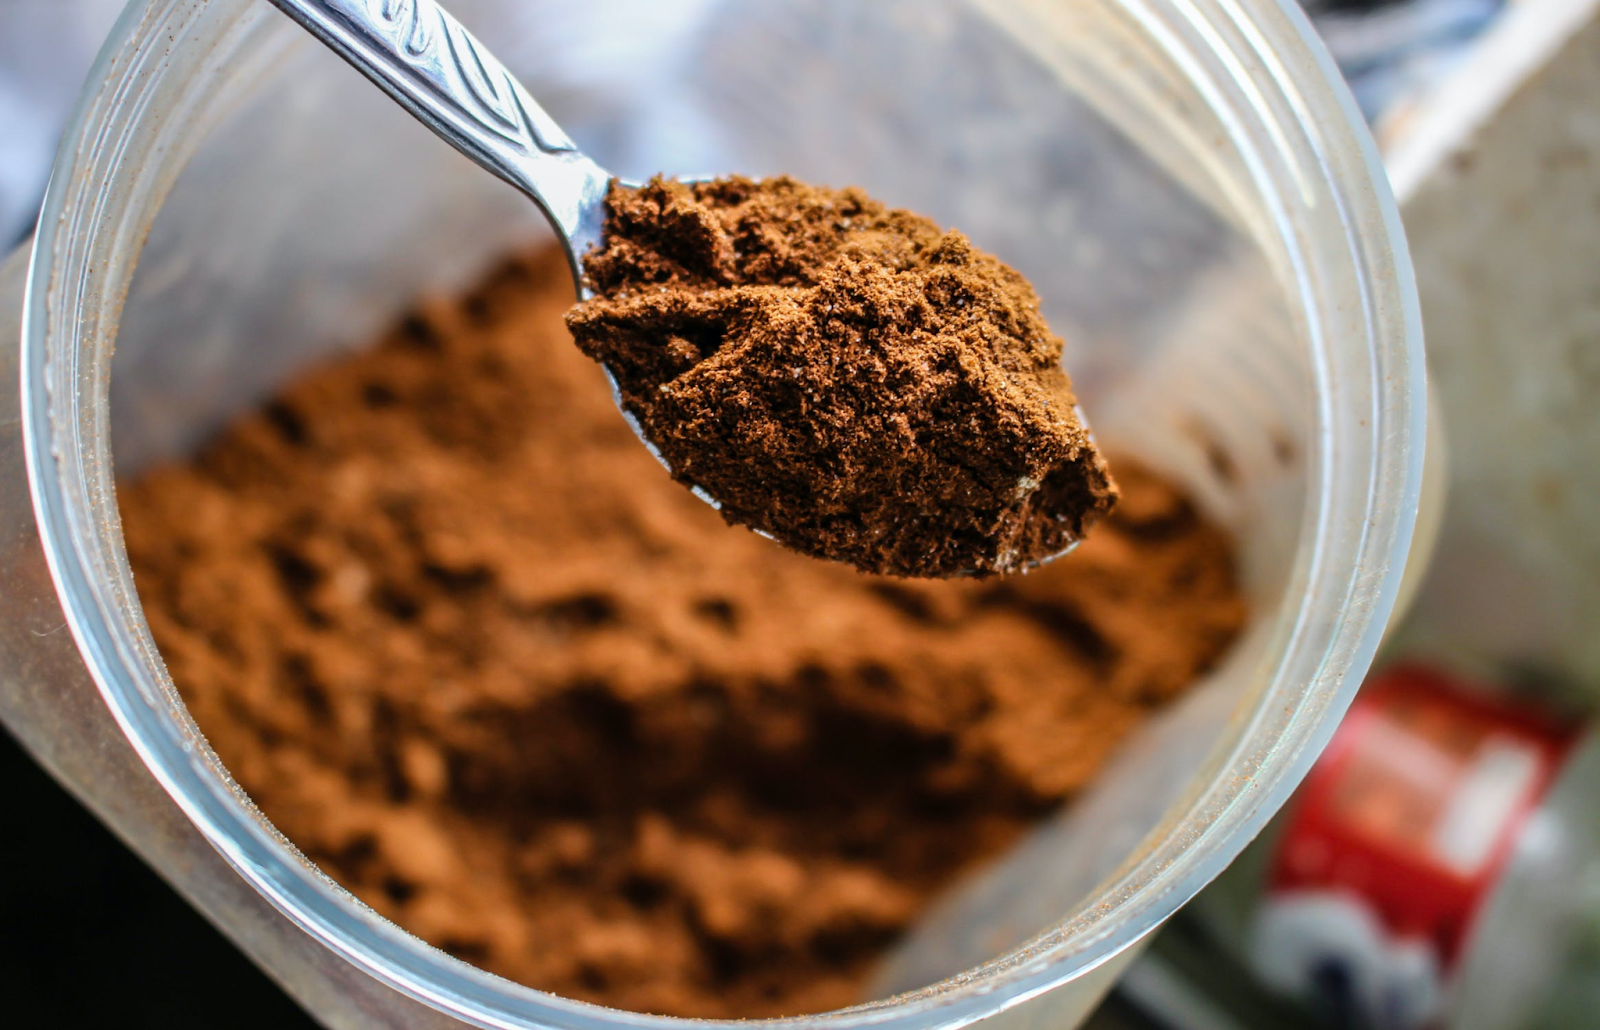 An image of whey protein as a post workout supplement.